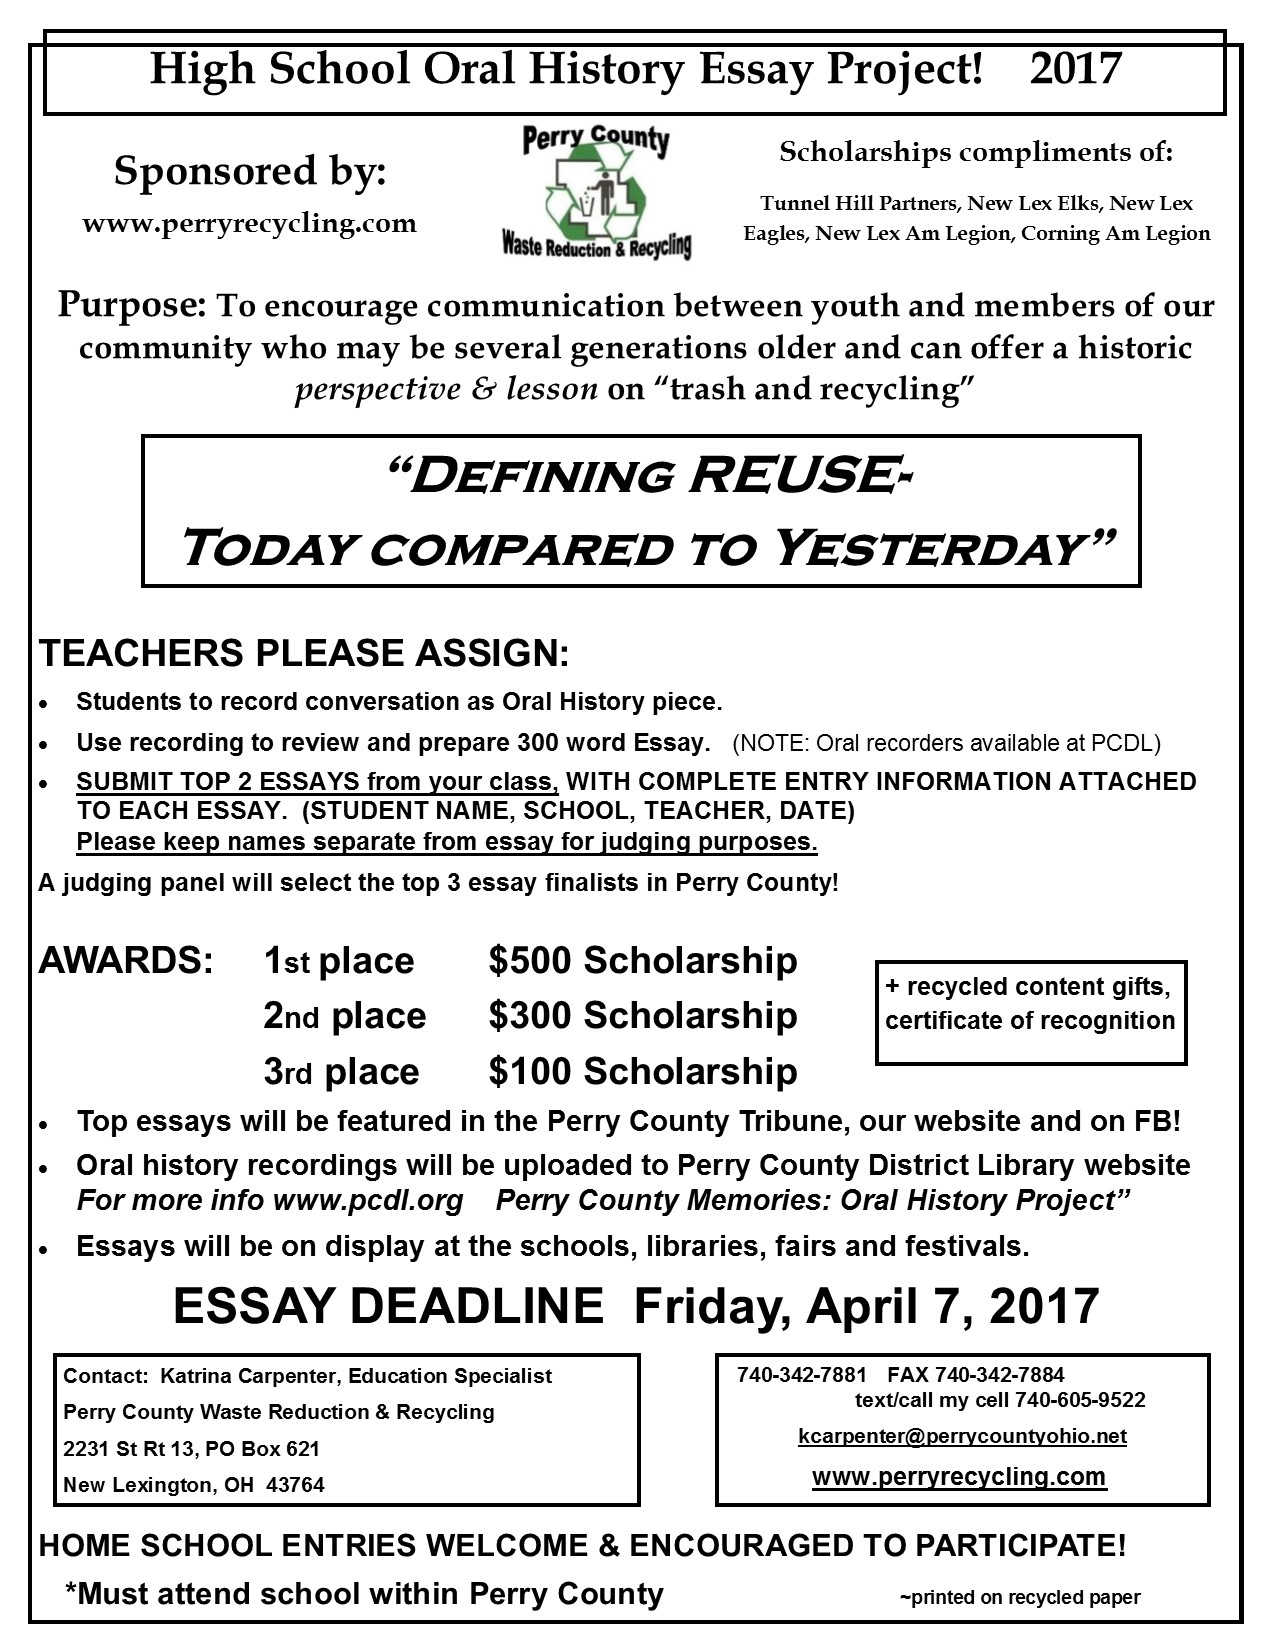 perry county waste reduction and recycling hs essay project